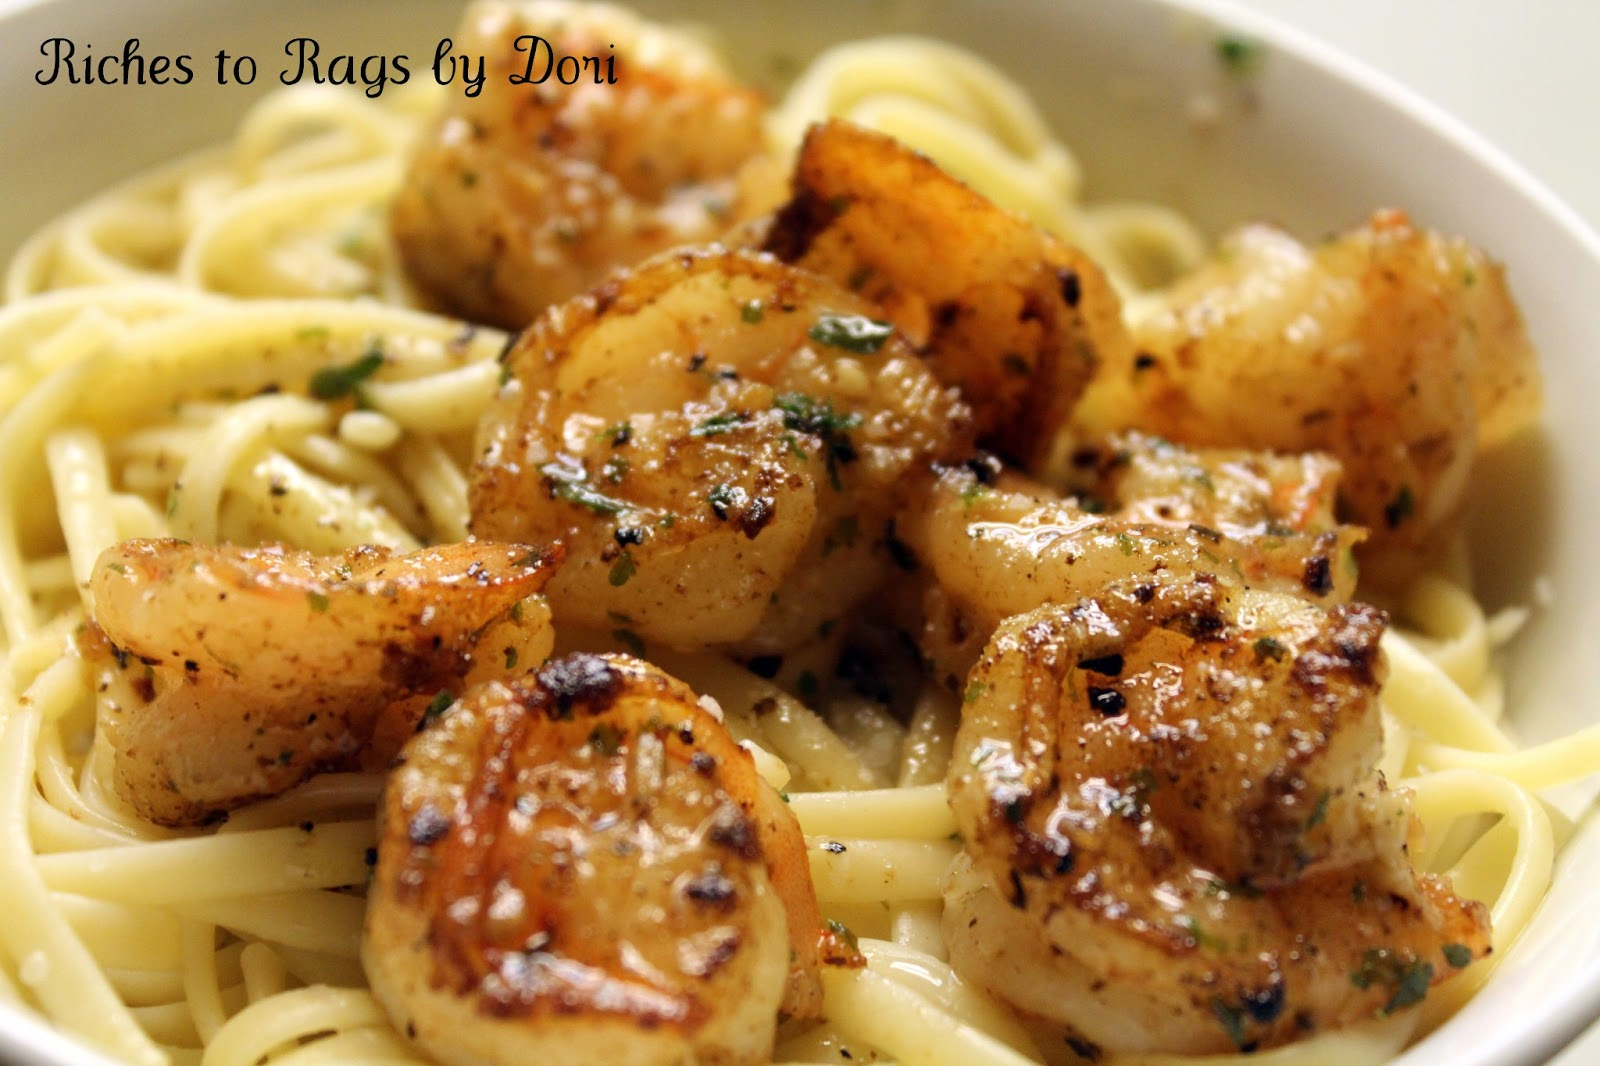 Riches to Rags* by Dori: Skillet Garlic Shrimp Linguine